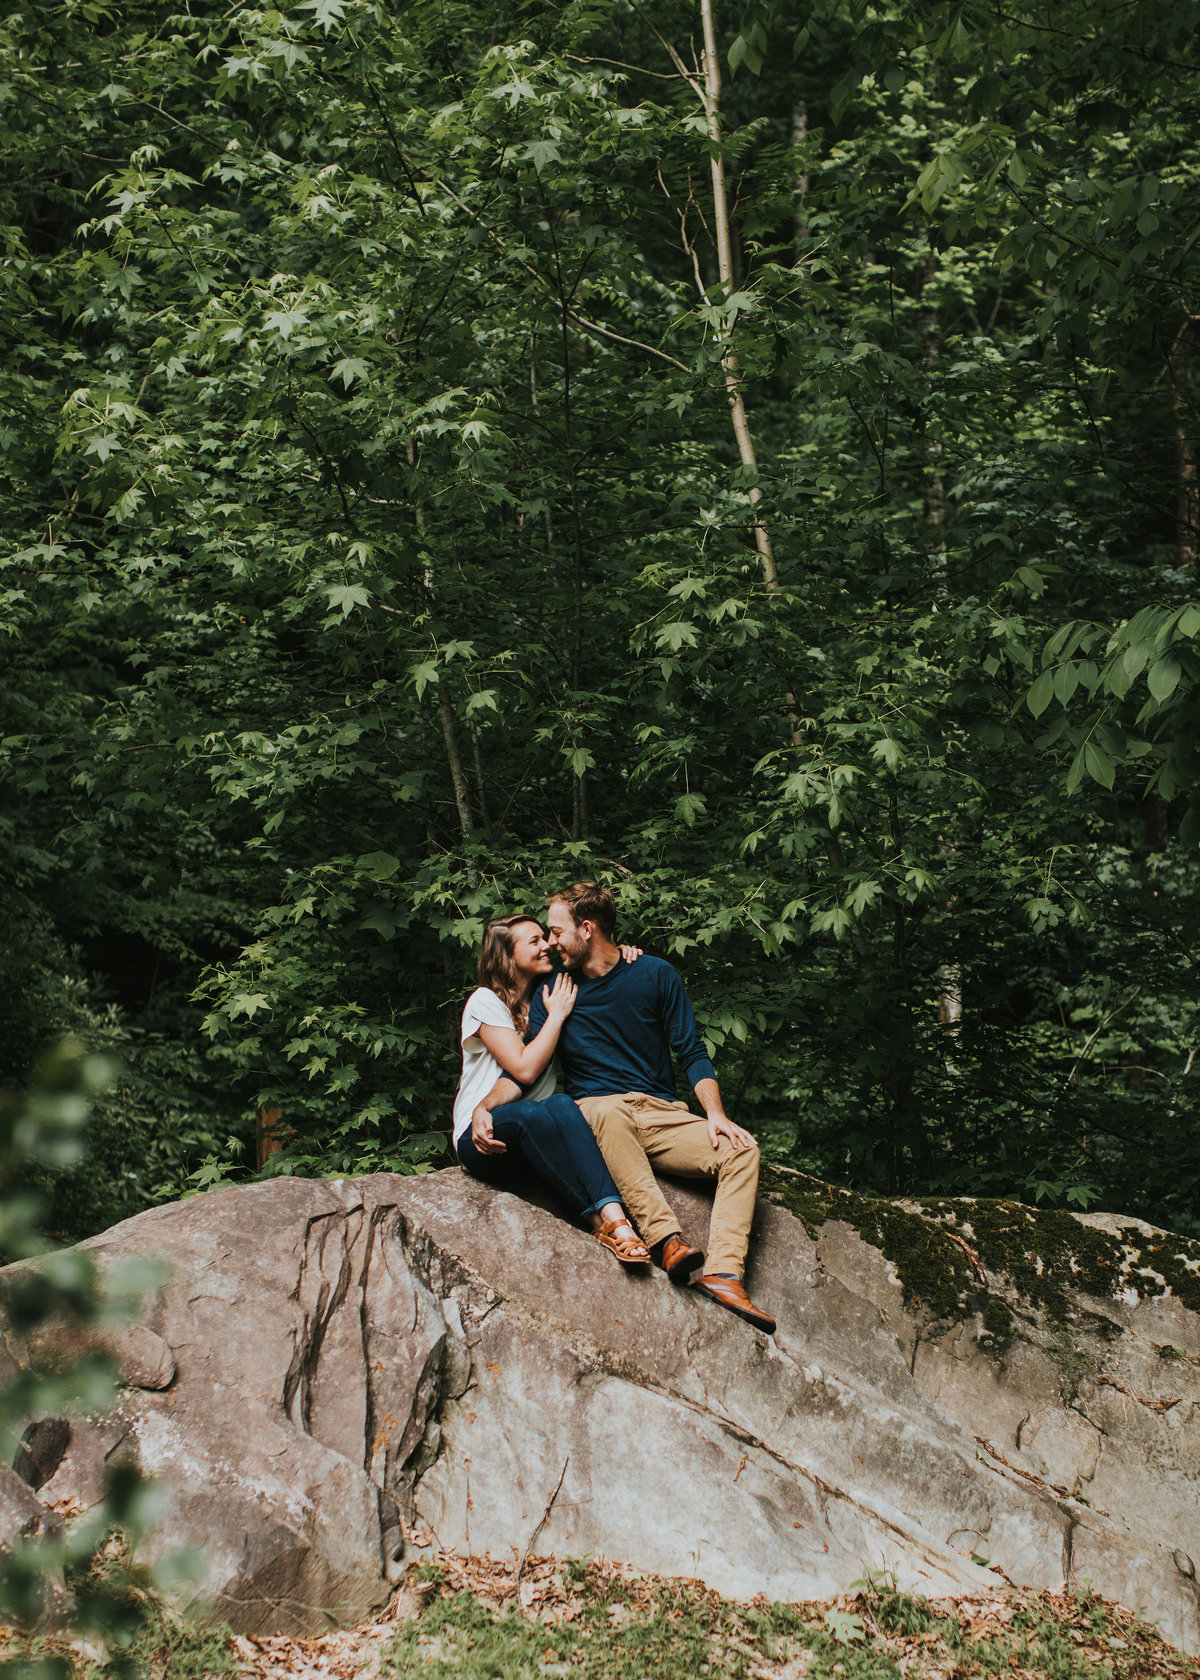 190513_sam&ansley-smokeymountainenengagements_KatelynBellPhoto_463